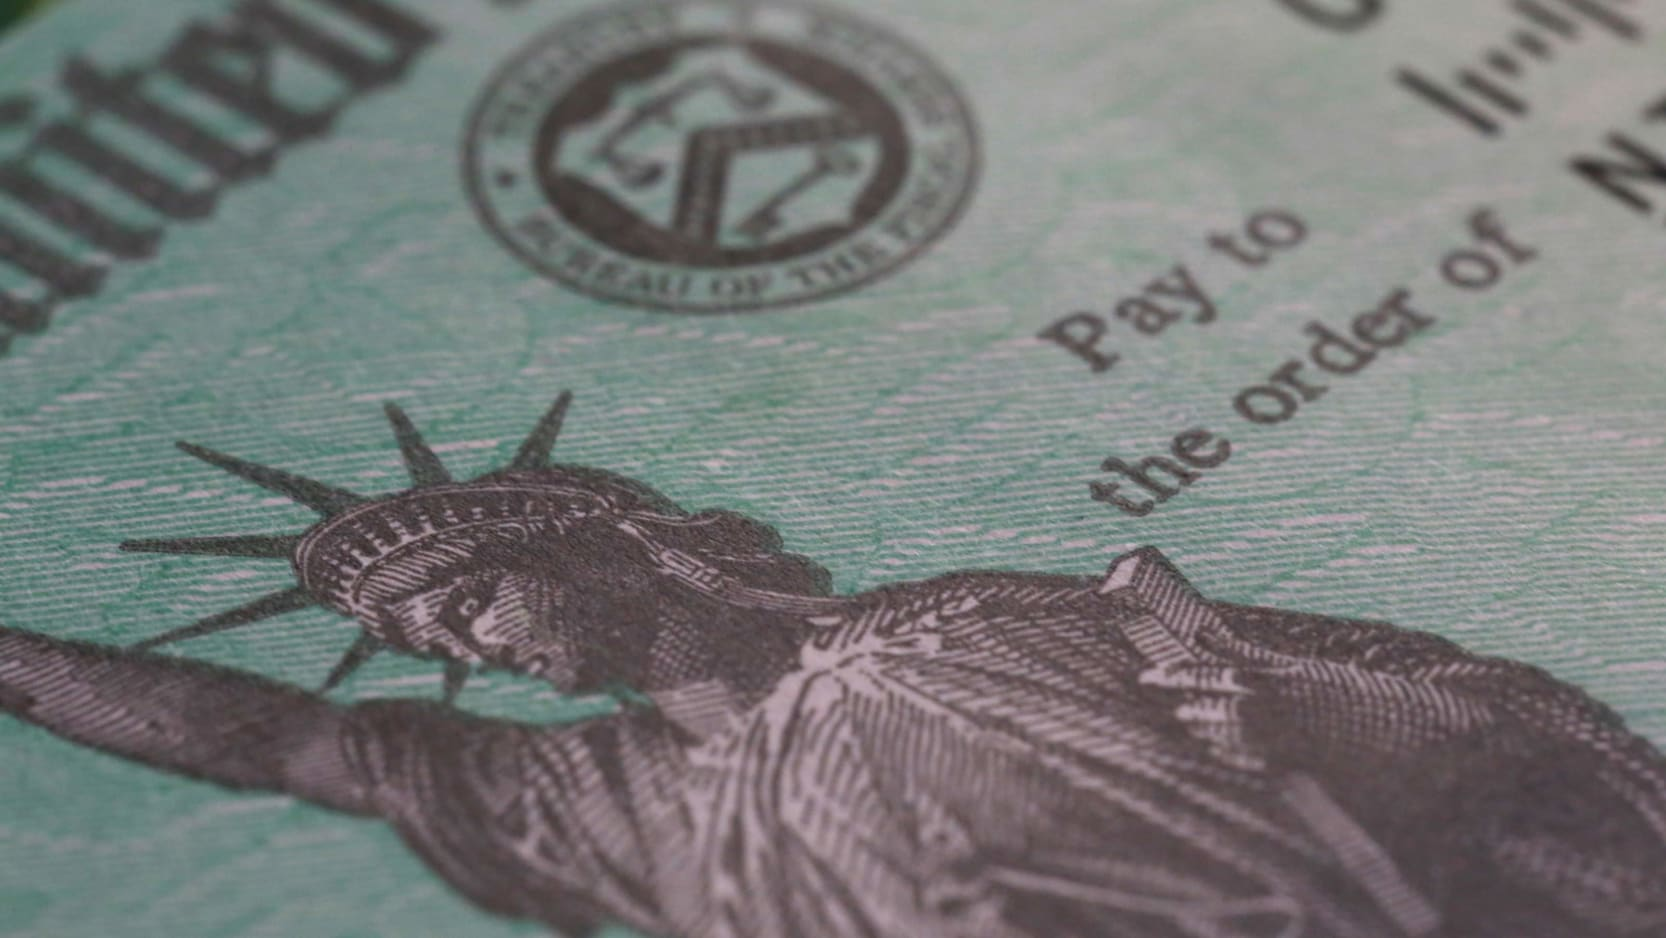 Close-up of a US government check.